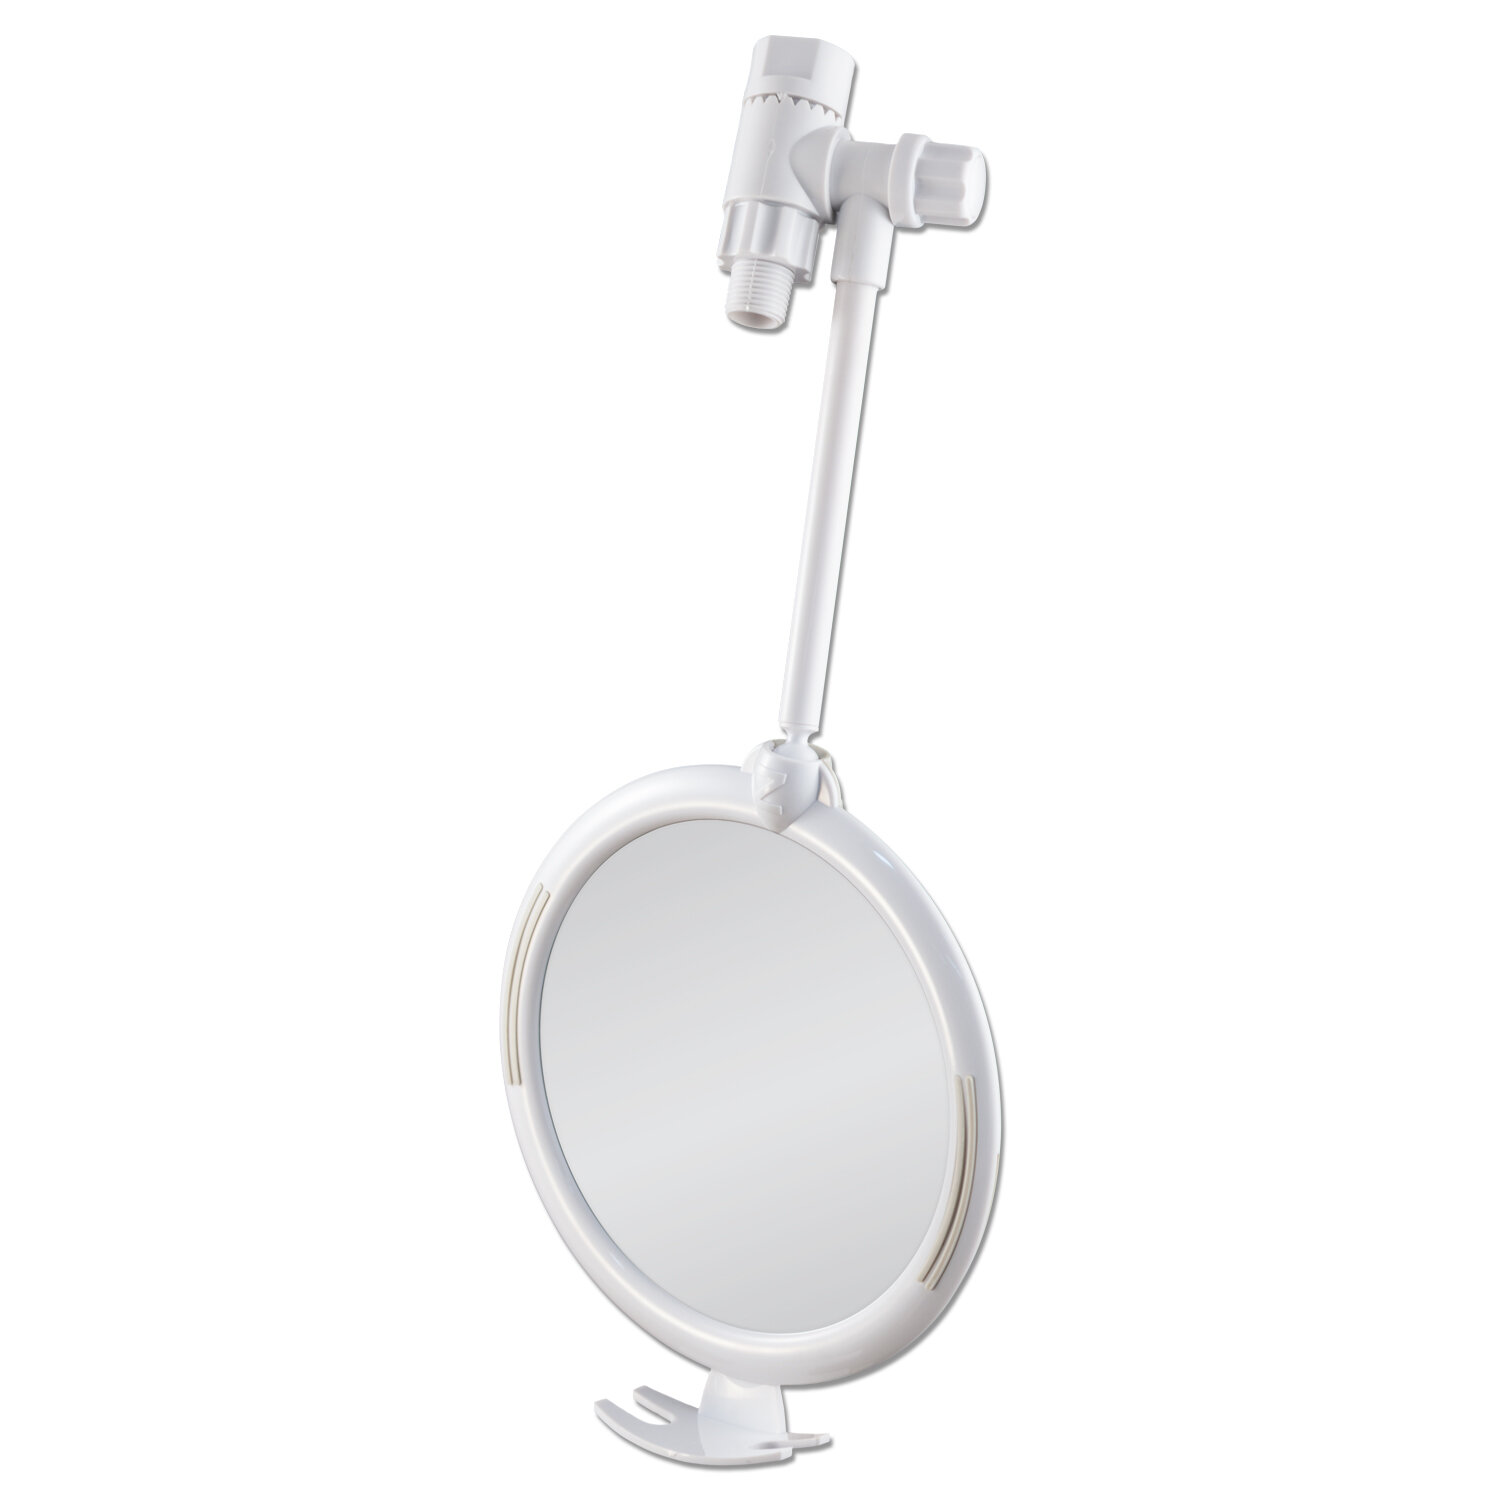 perfect degree with power dp hook amazon strong cup rotating viewing suction mirrors anti fogless shaving easy razor for lock com traveling mirror fog shower